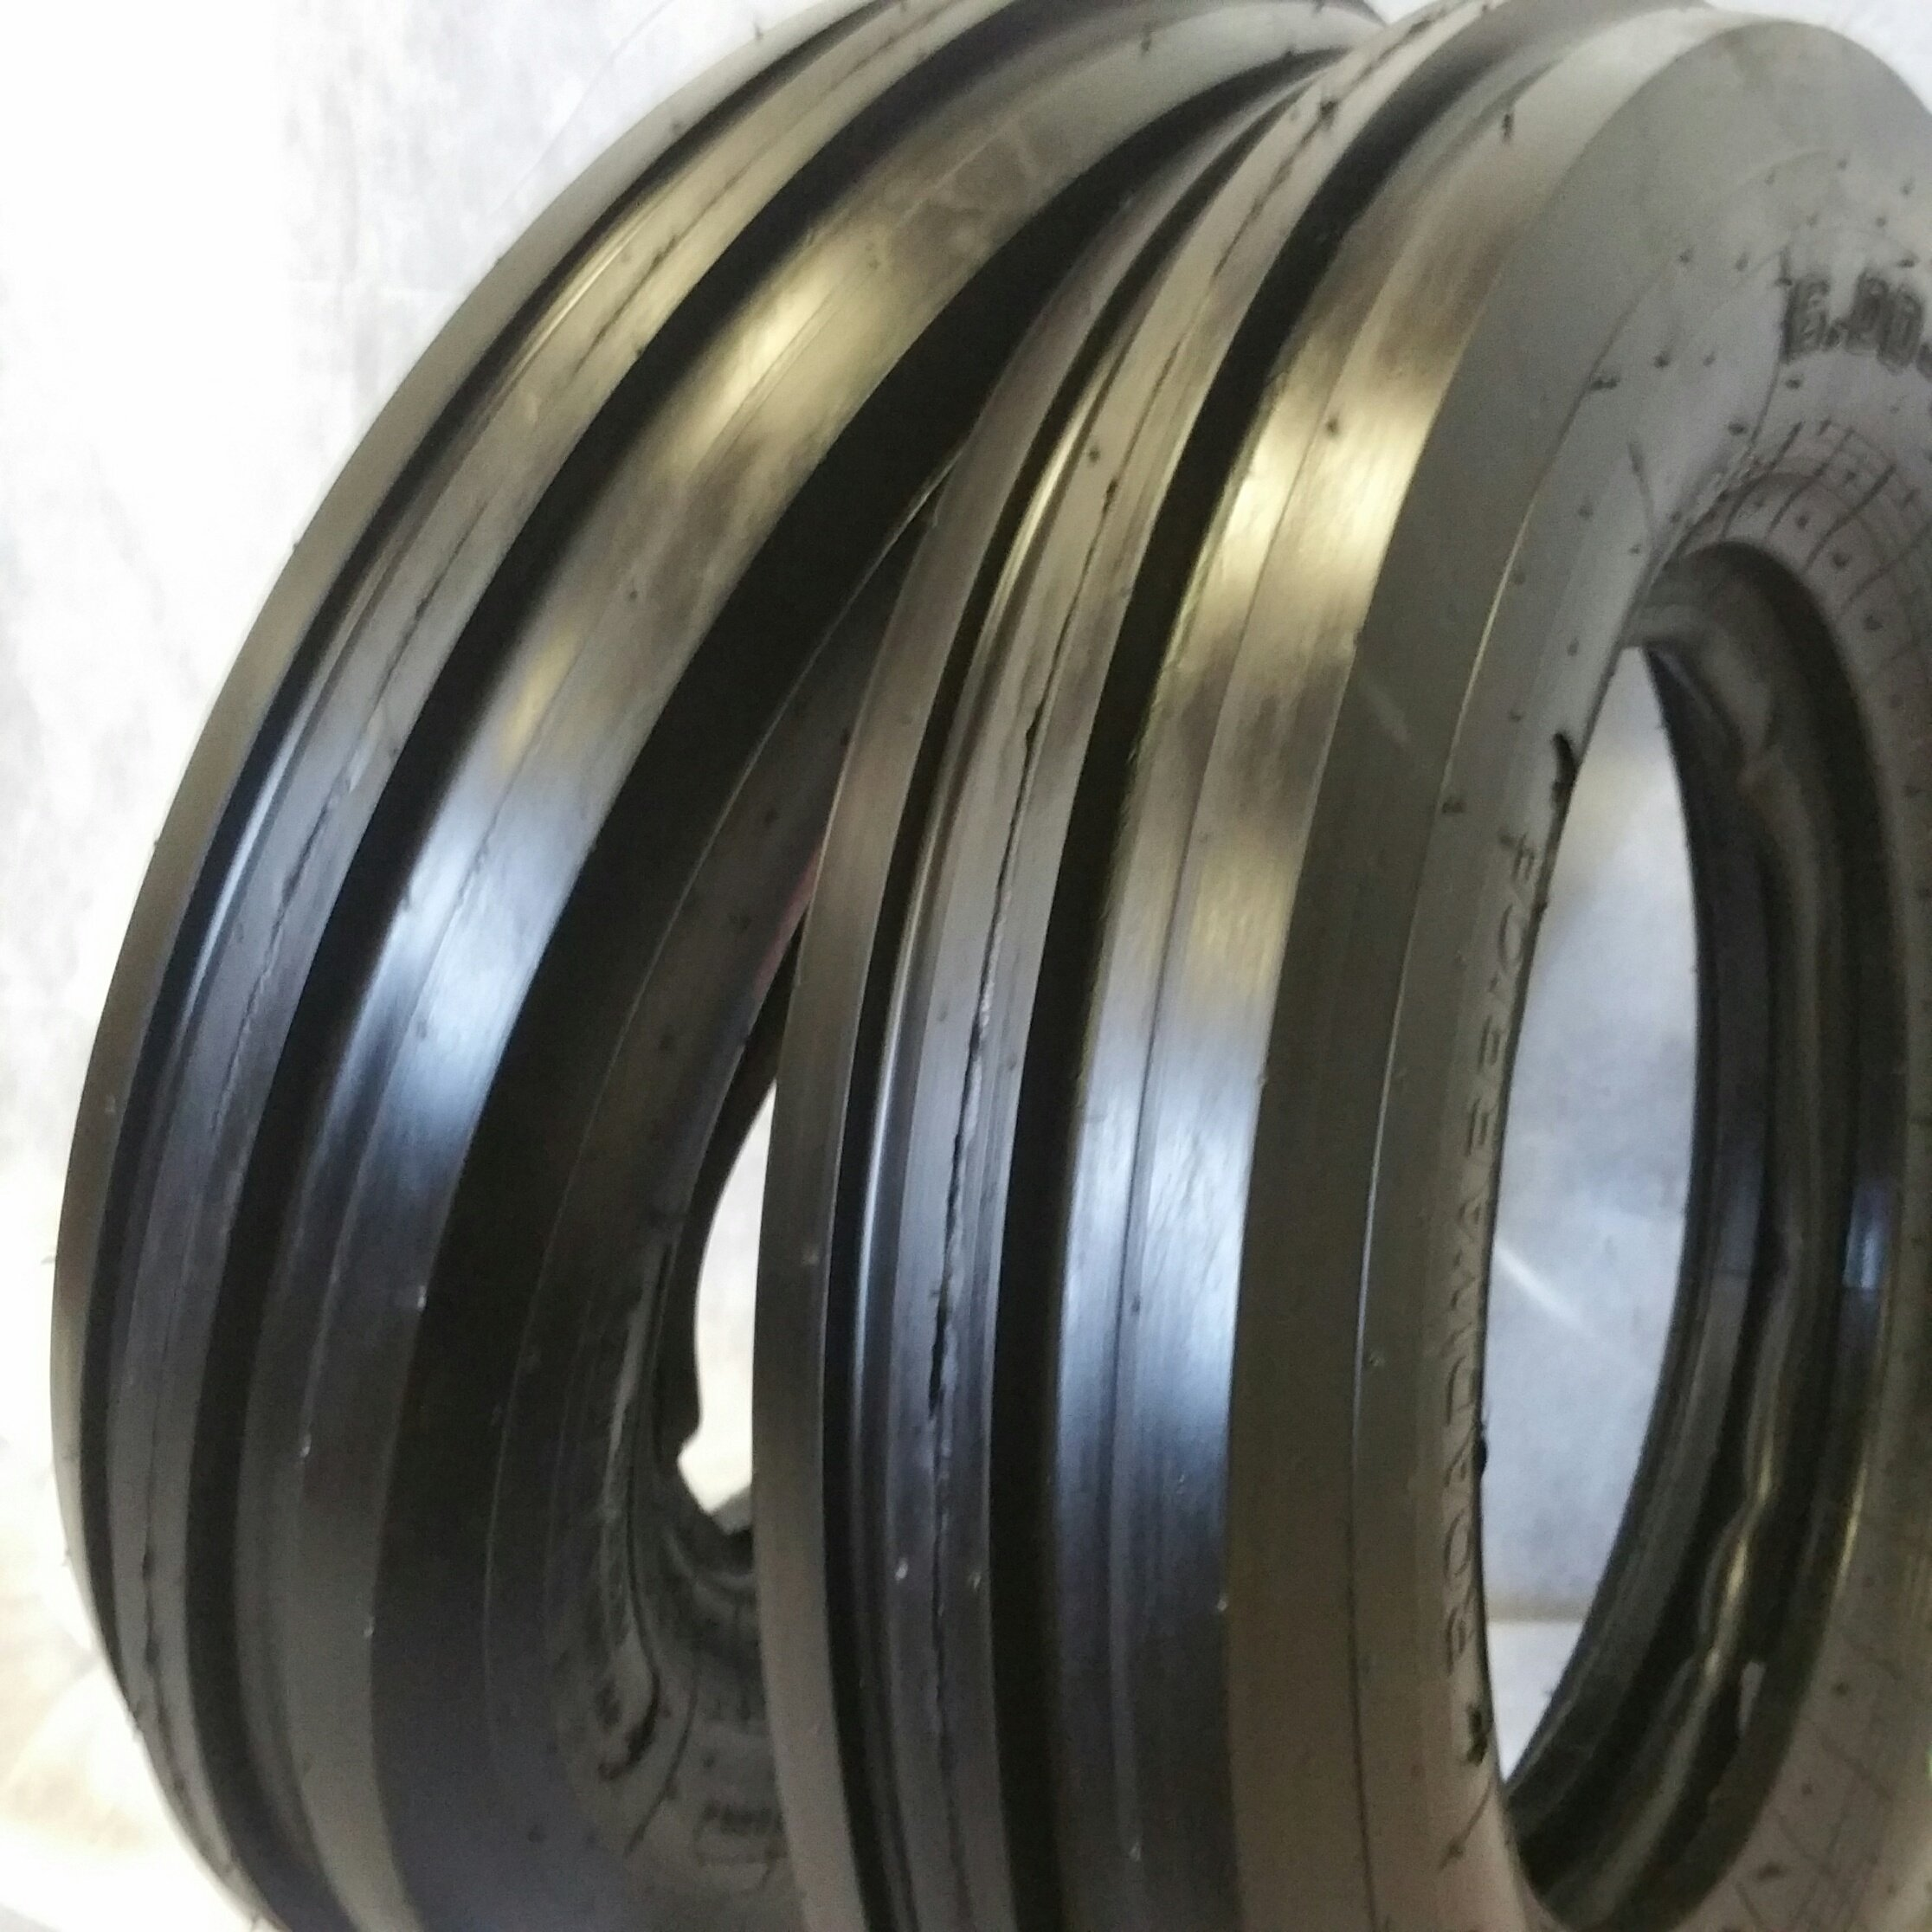 (2 TIRES + 2 TUBES) 6.00-16 8PLY ROAD WARRIOR OZKA KNK35 F2 AIA32-3-Rib Farm Tractor Tire 6.00x16 by Road Warrior